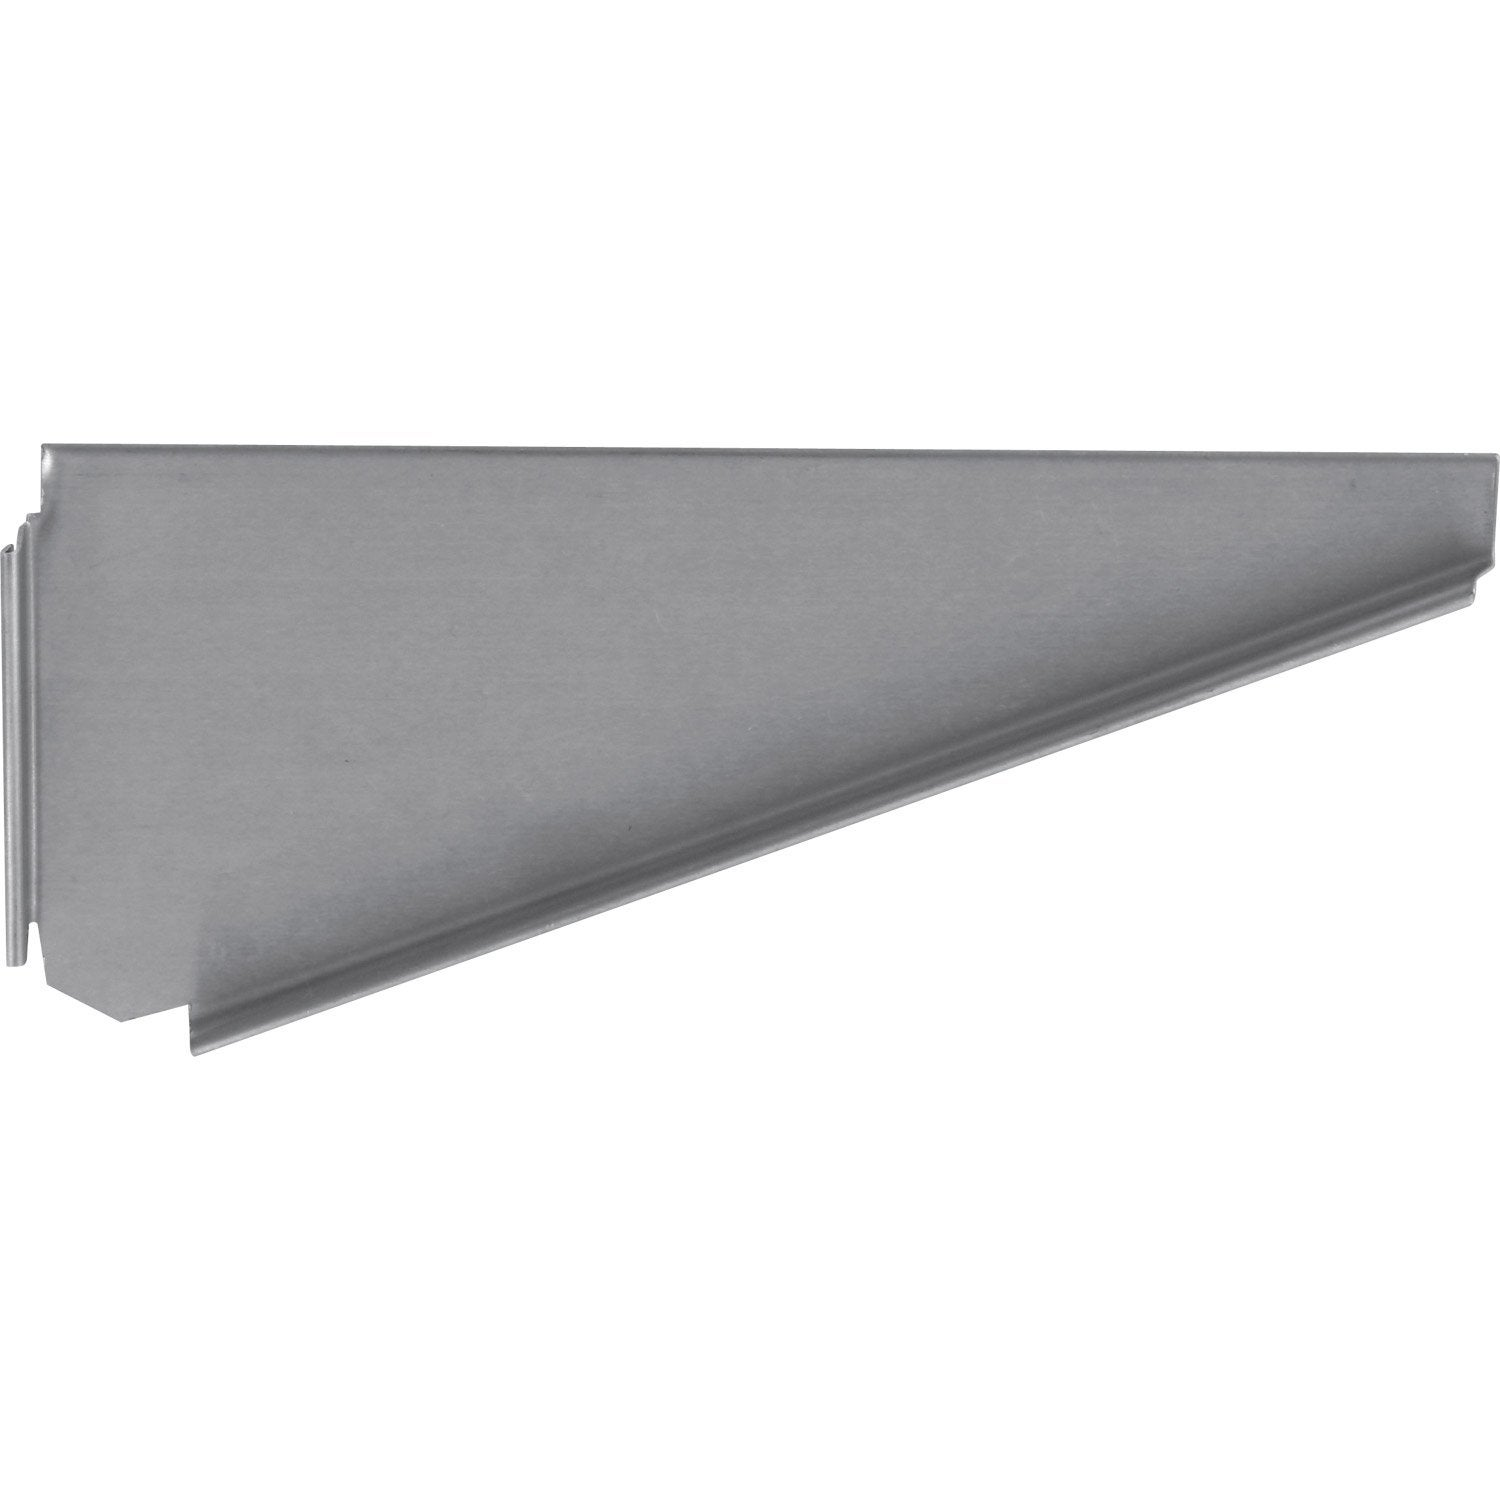 Talon droit embo table pour goutti re nantaise gris zinc for Table exterieur zinc